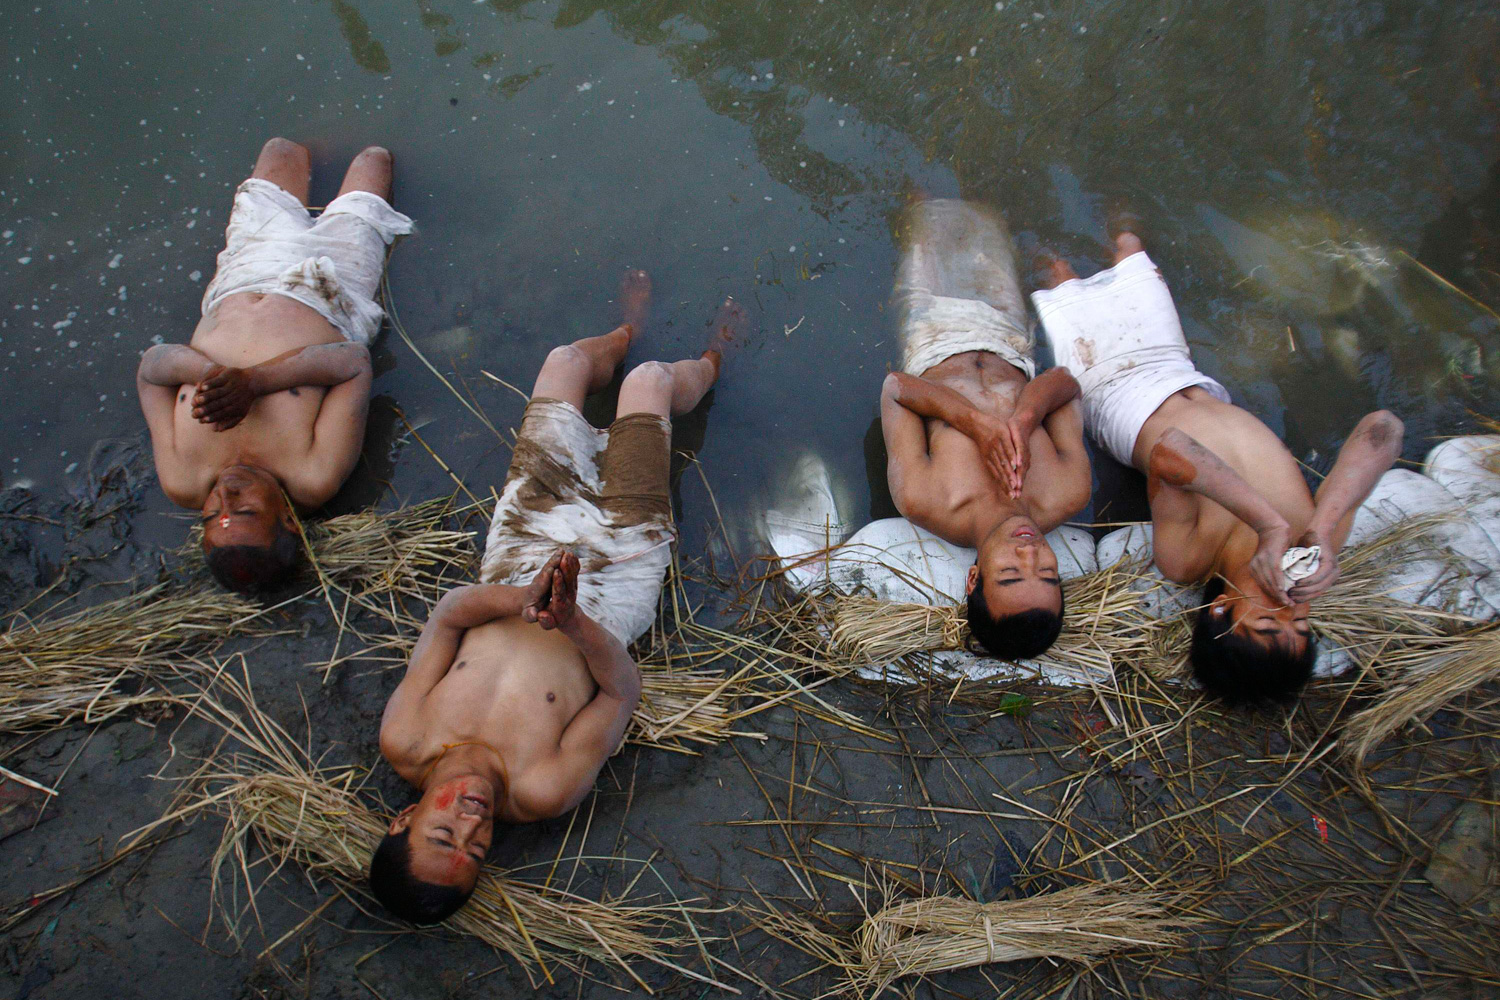 February 7, 2012. Devotees offer prayers by taking a dip on the final day of the month-long Swasthani festival in the Hanumante River at Bhaktapur, near Kathmandu.